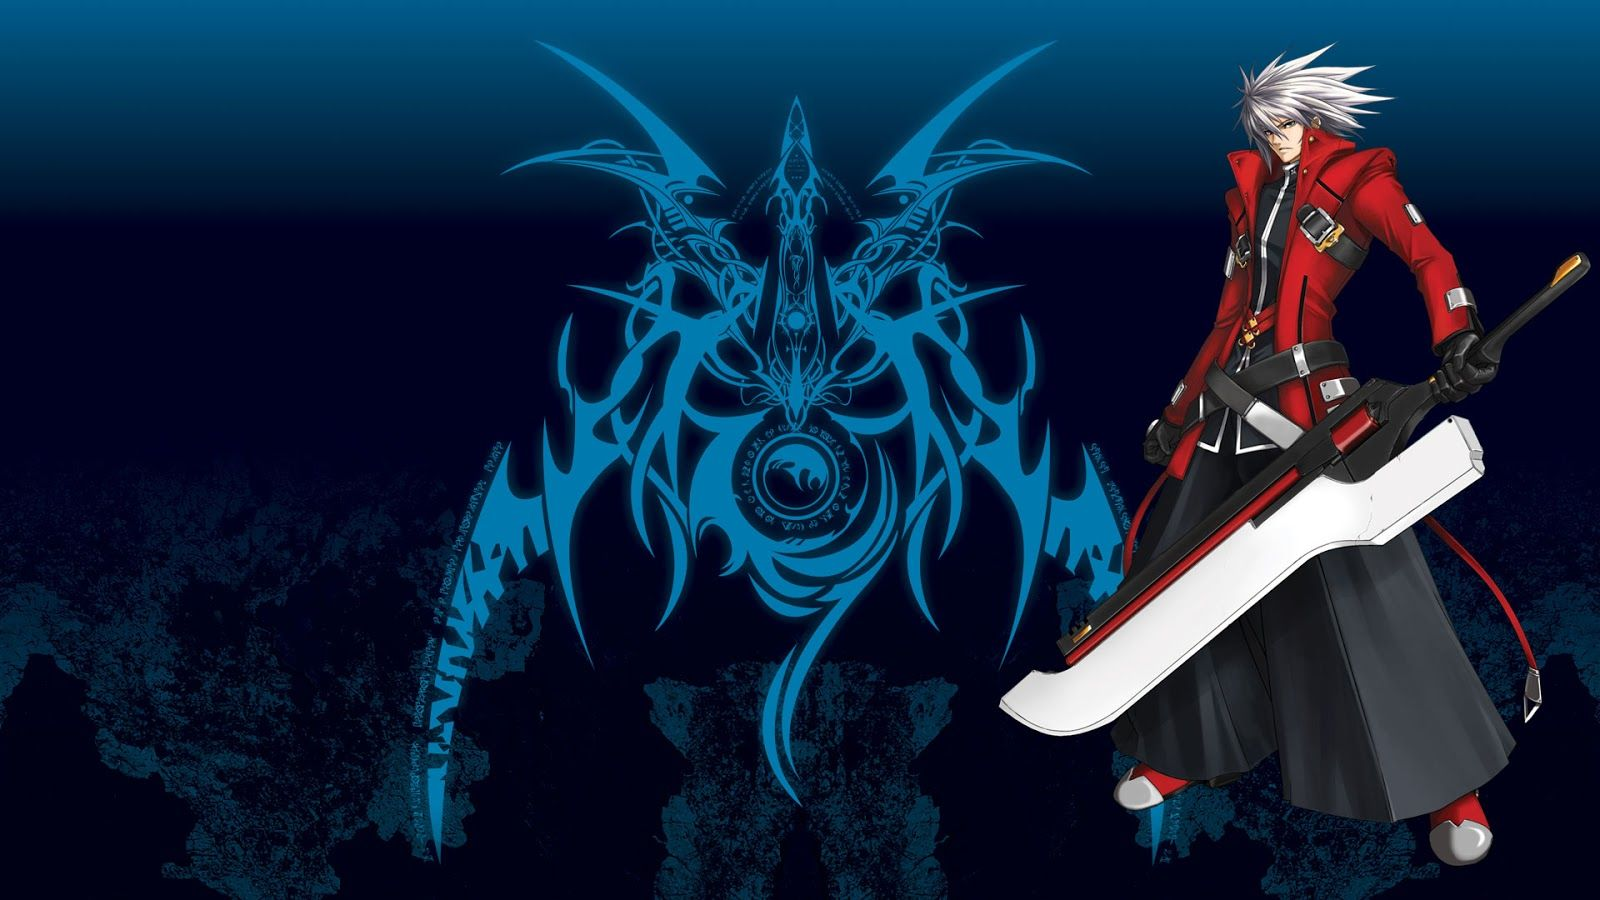 Blazblue Wallpapers Top Free Blazblue Backgrounds Wallpaperaccess